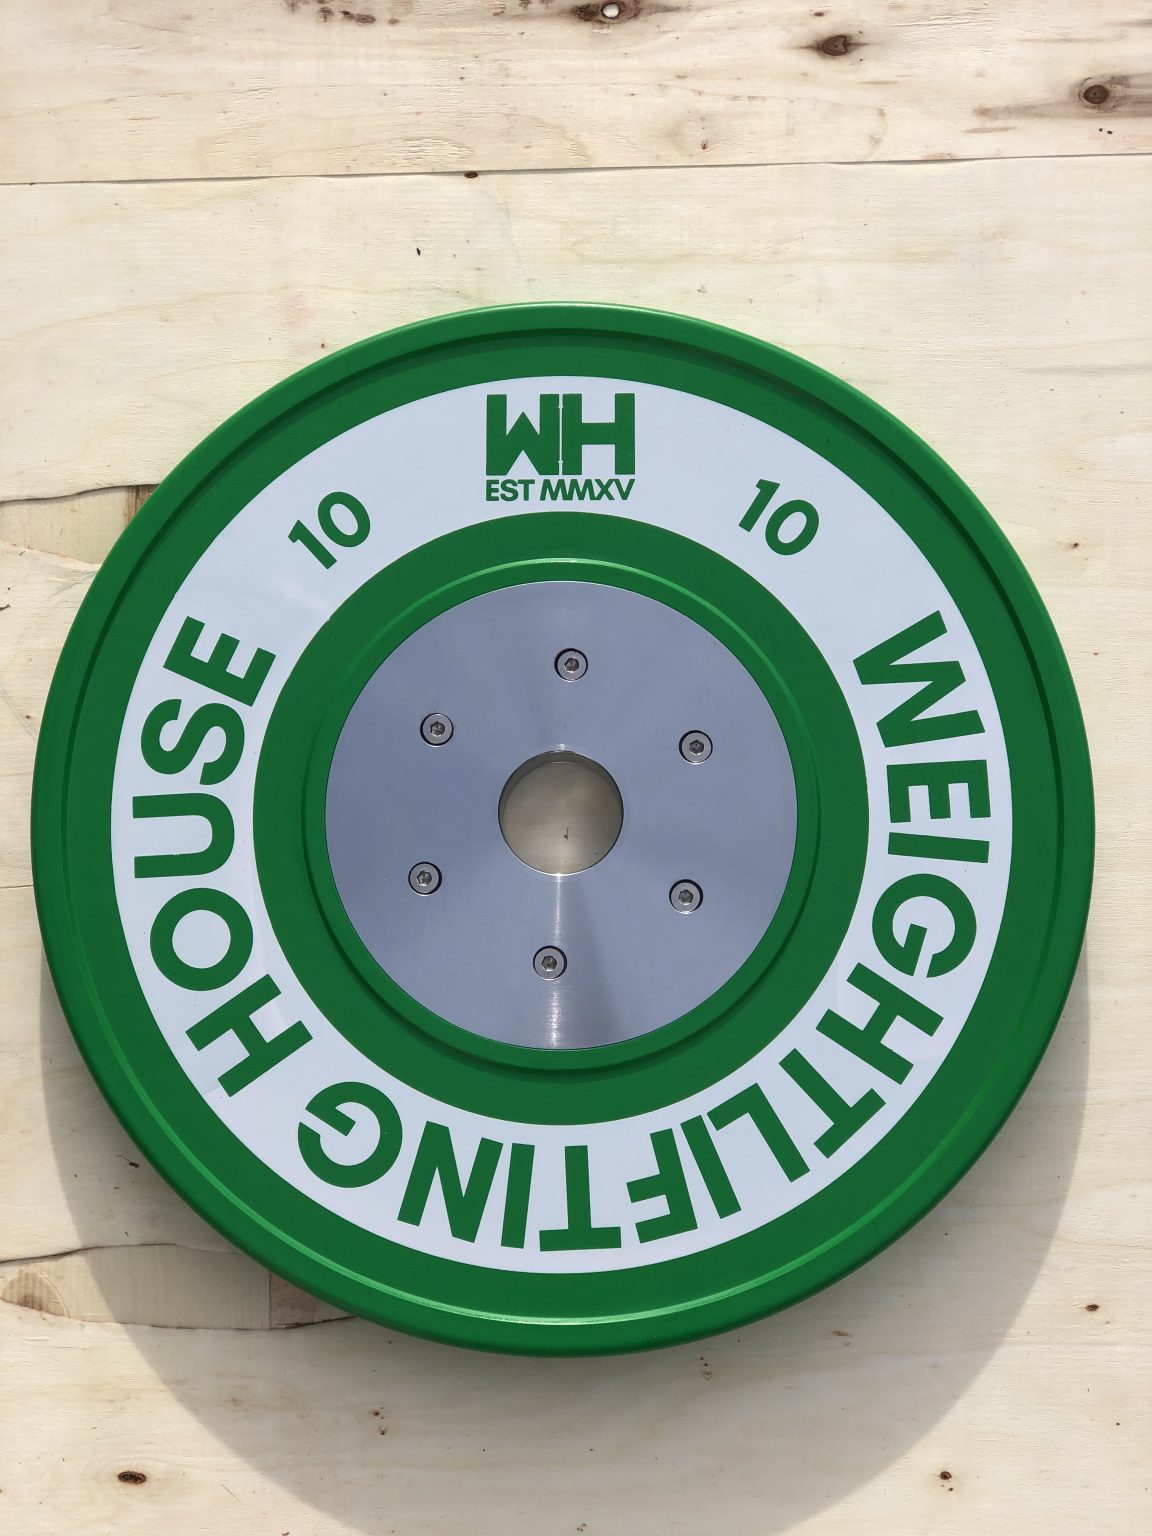 10kg weightlifting house plate